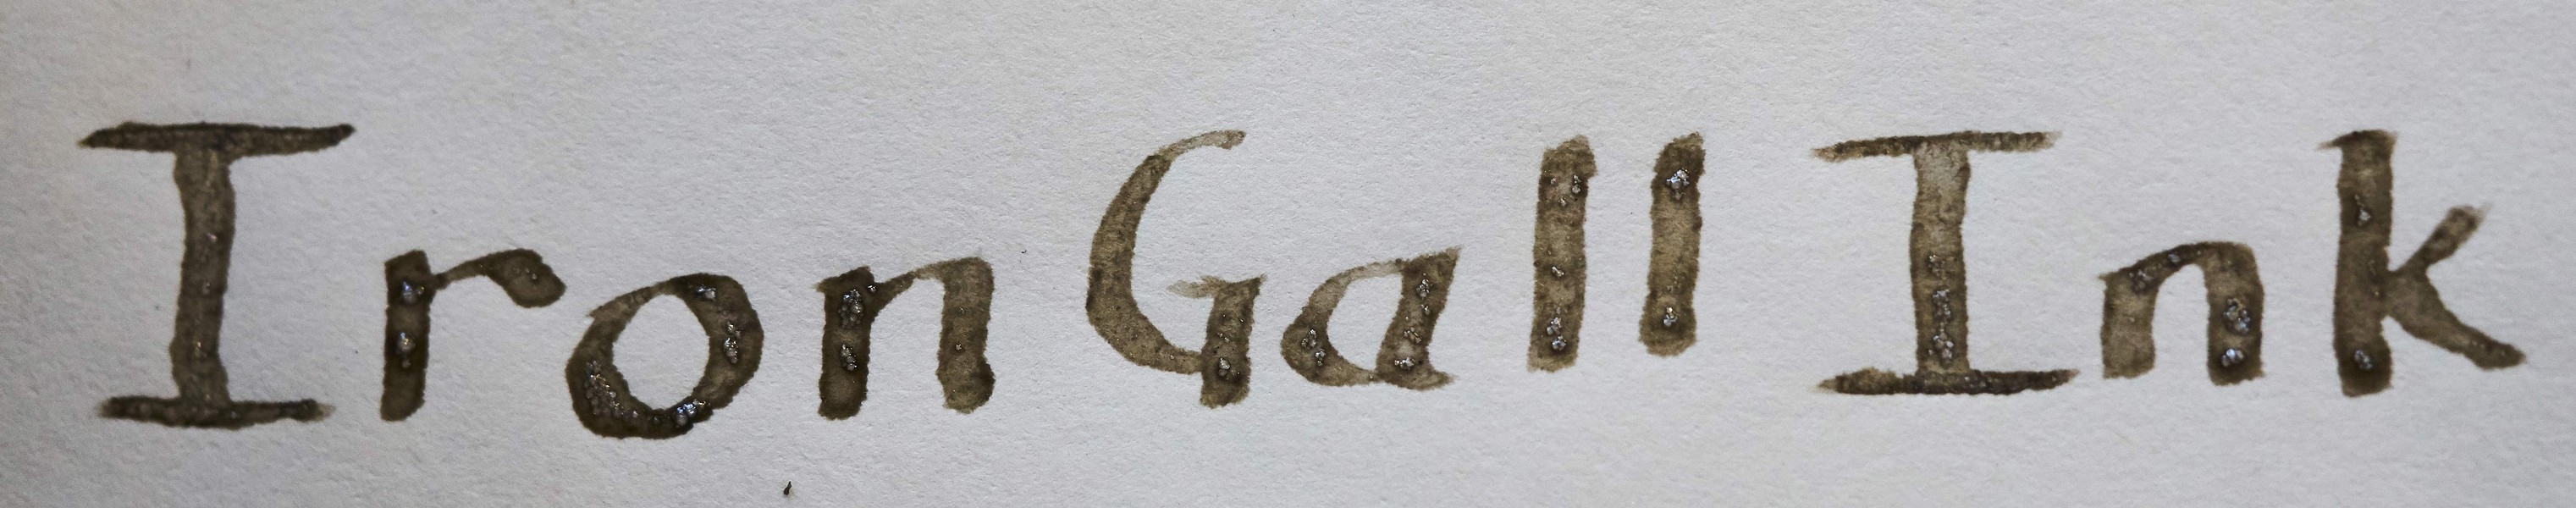 Lettering with home made iron gall ink. - PHOTO BY ANTHONY WESTKAMPER